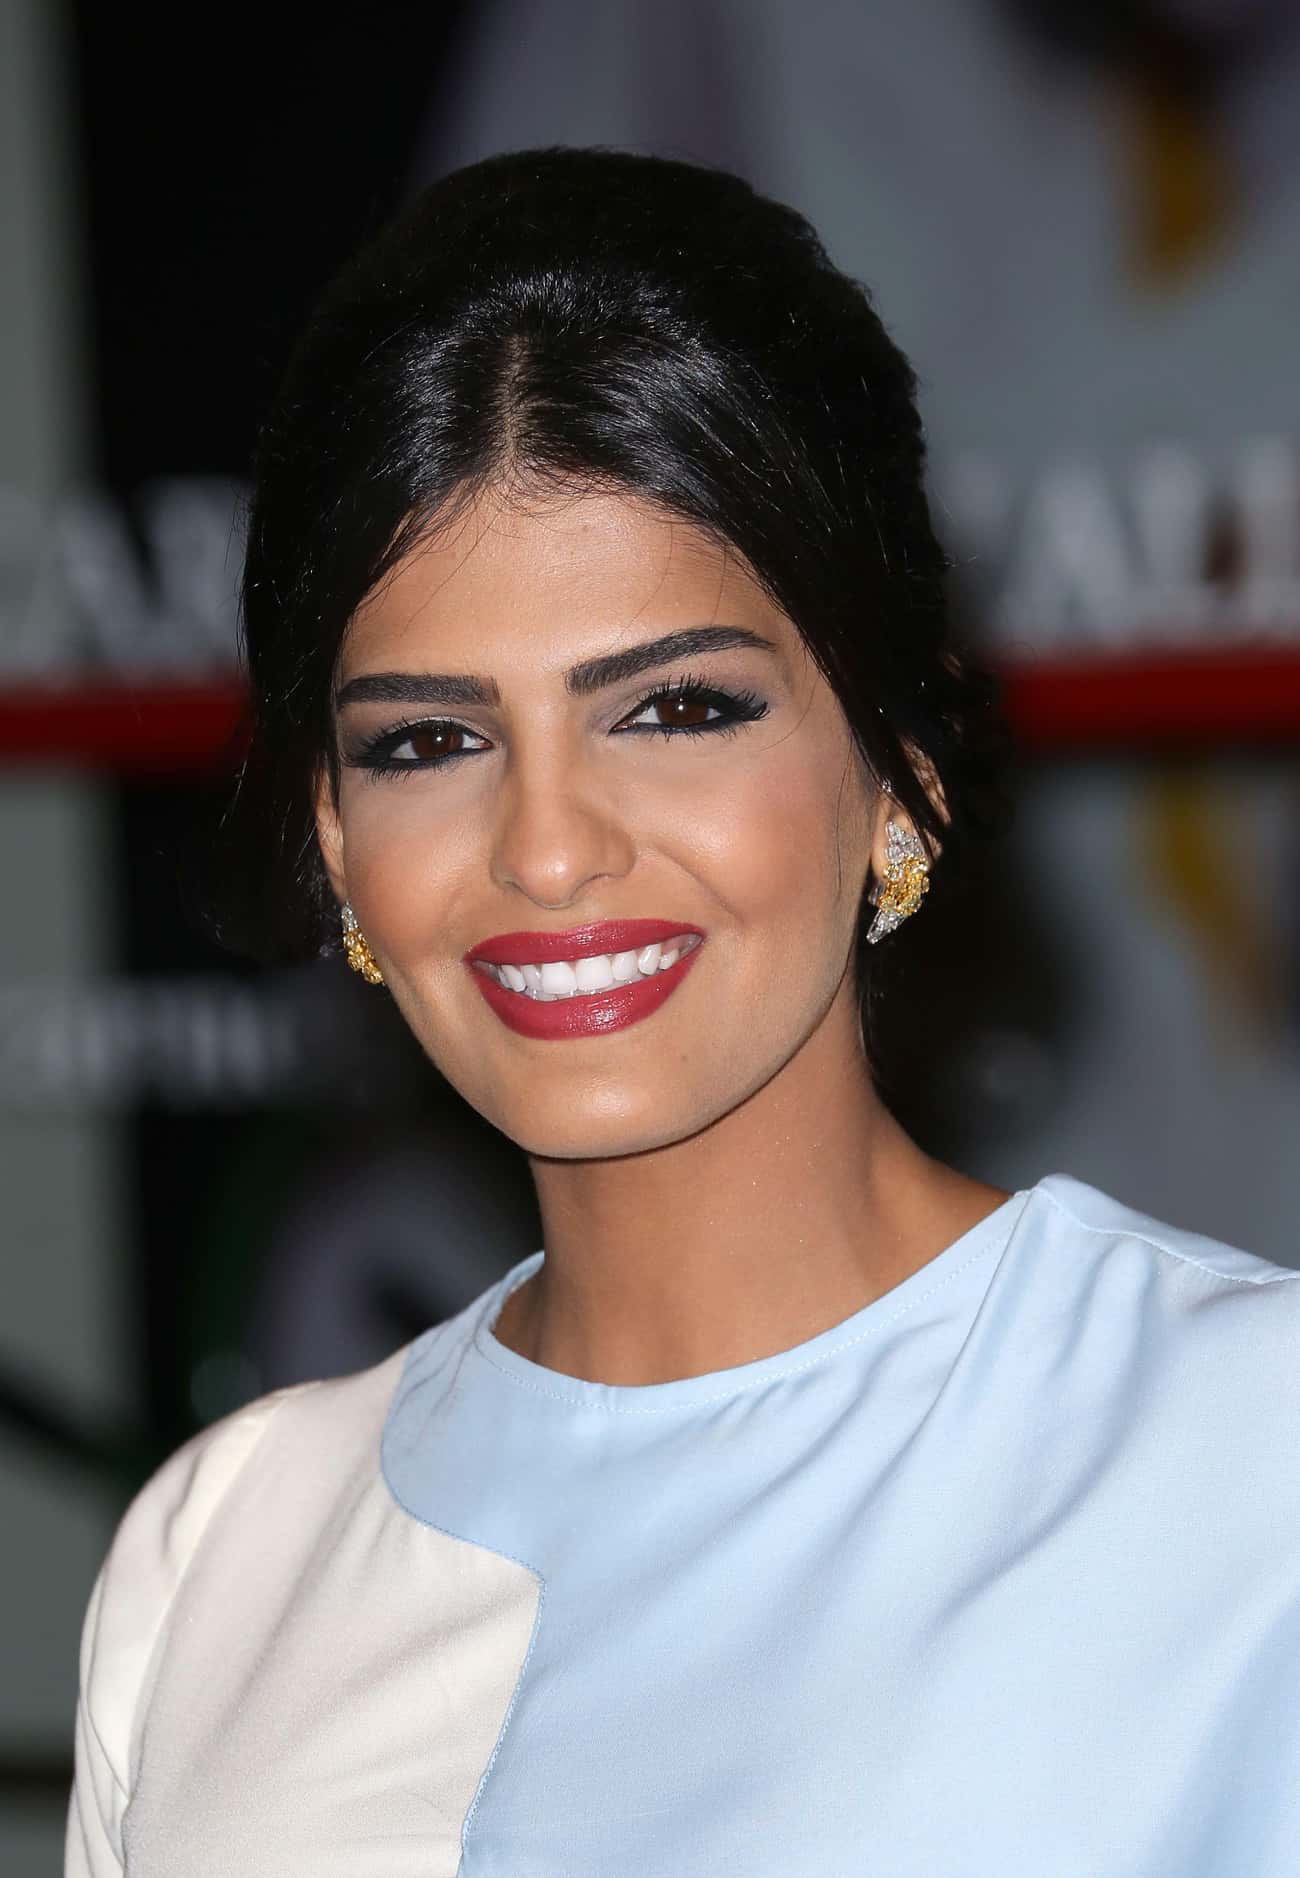 Princess Ameera Al-Taweel is listed (or ranked) 1 on the list The Most Beautiful Royal Women Around the World